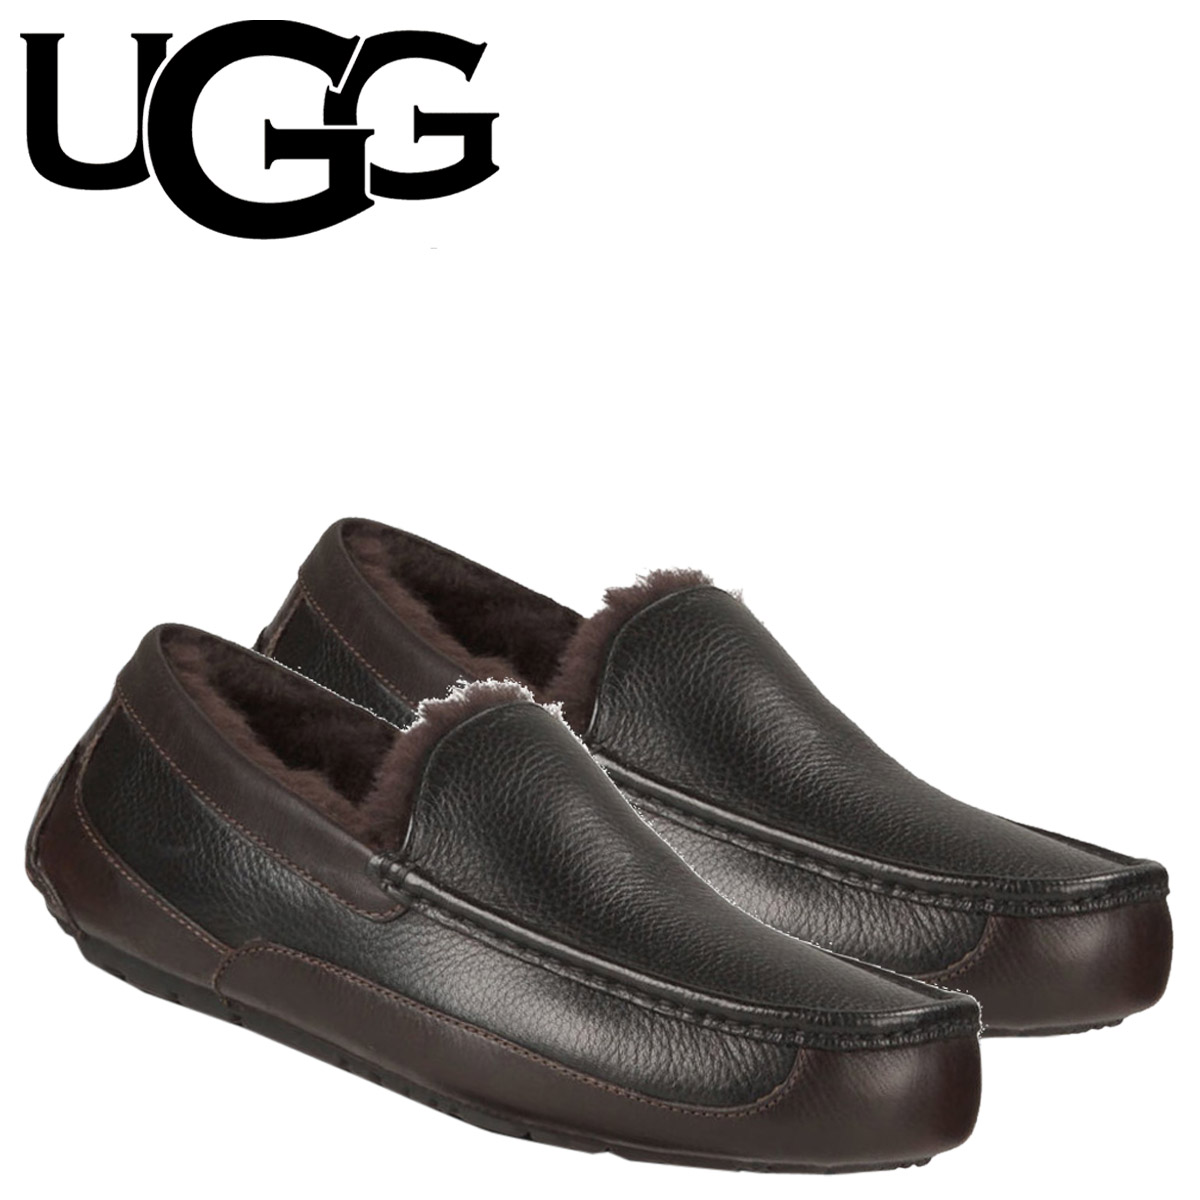 UGG UGG men's Ascot leather shoes MENS ASCOT LEATHER Shearling leather 2015 new 1005229 black China tea [1 / 22 new in stock] [regular]